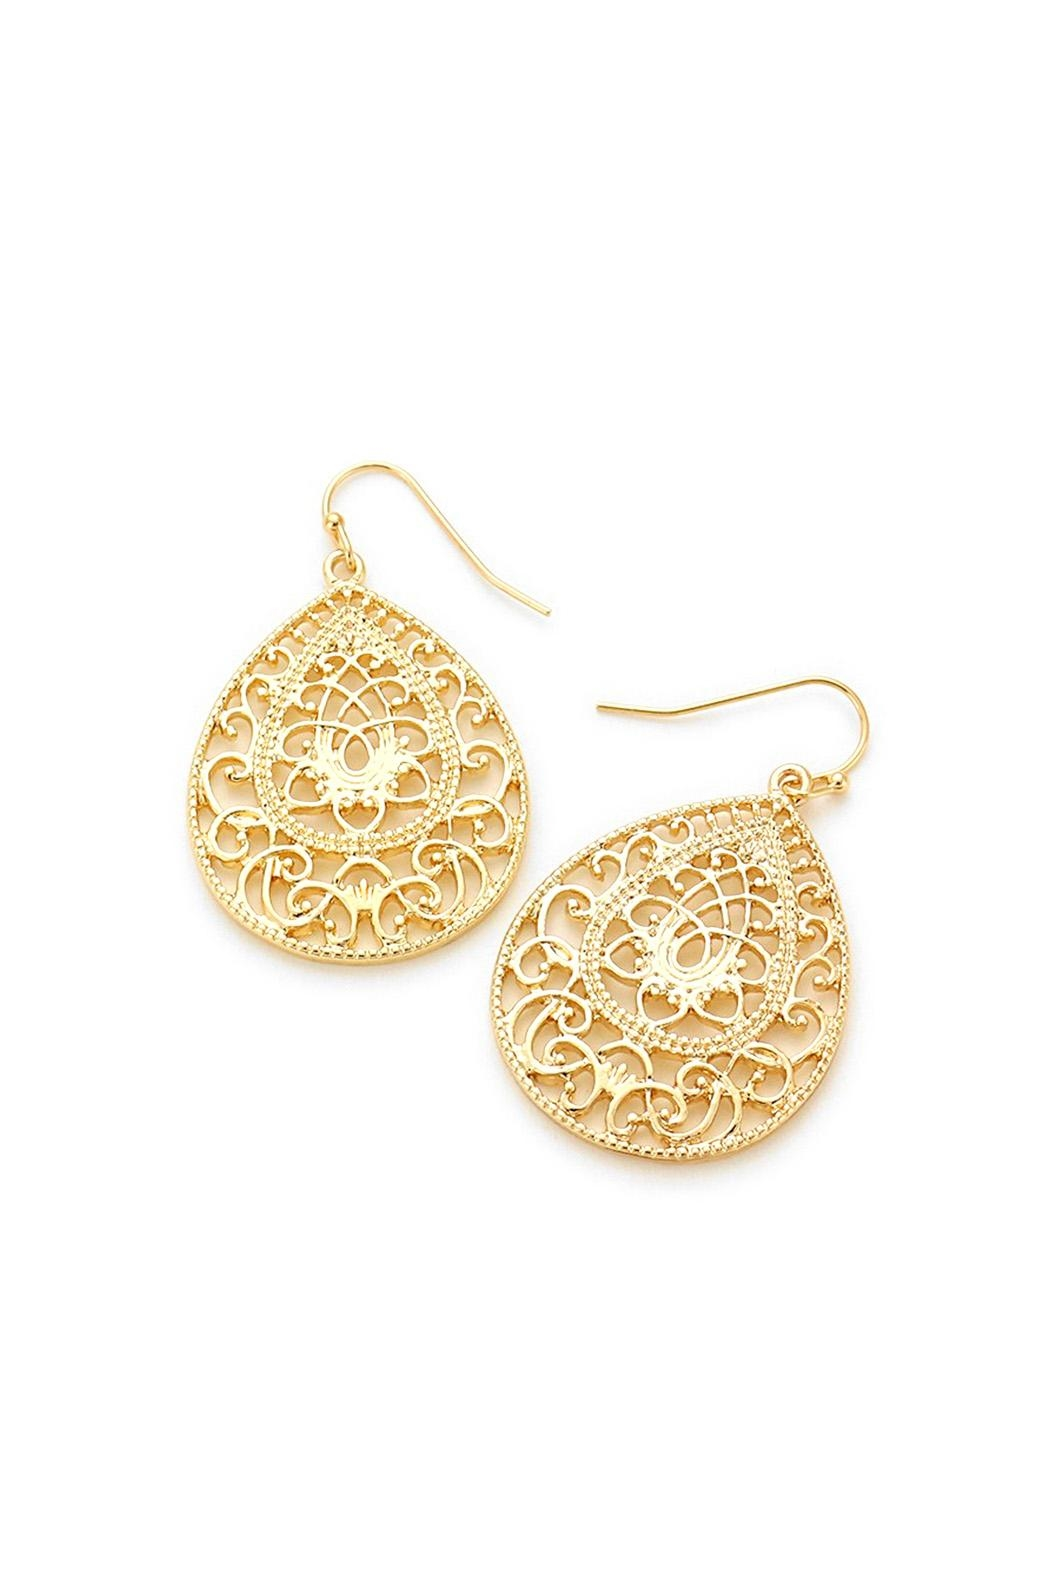 Wild Lilies Jewelry  Gold Teardrop Earrings - Main Image